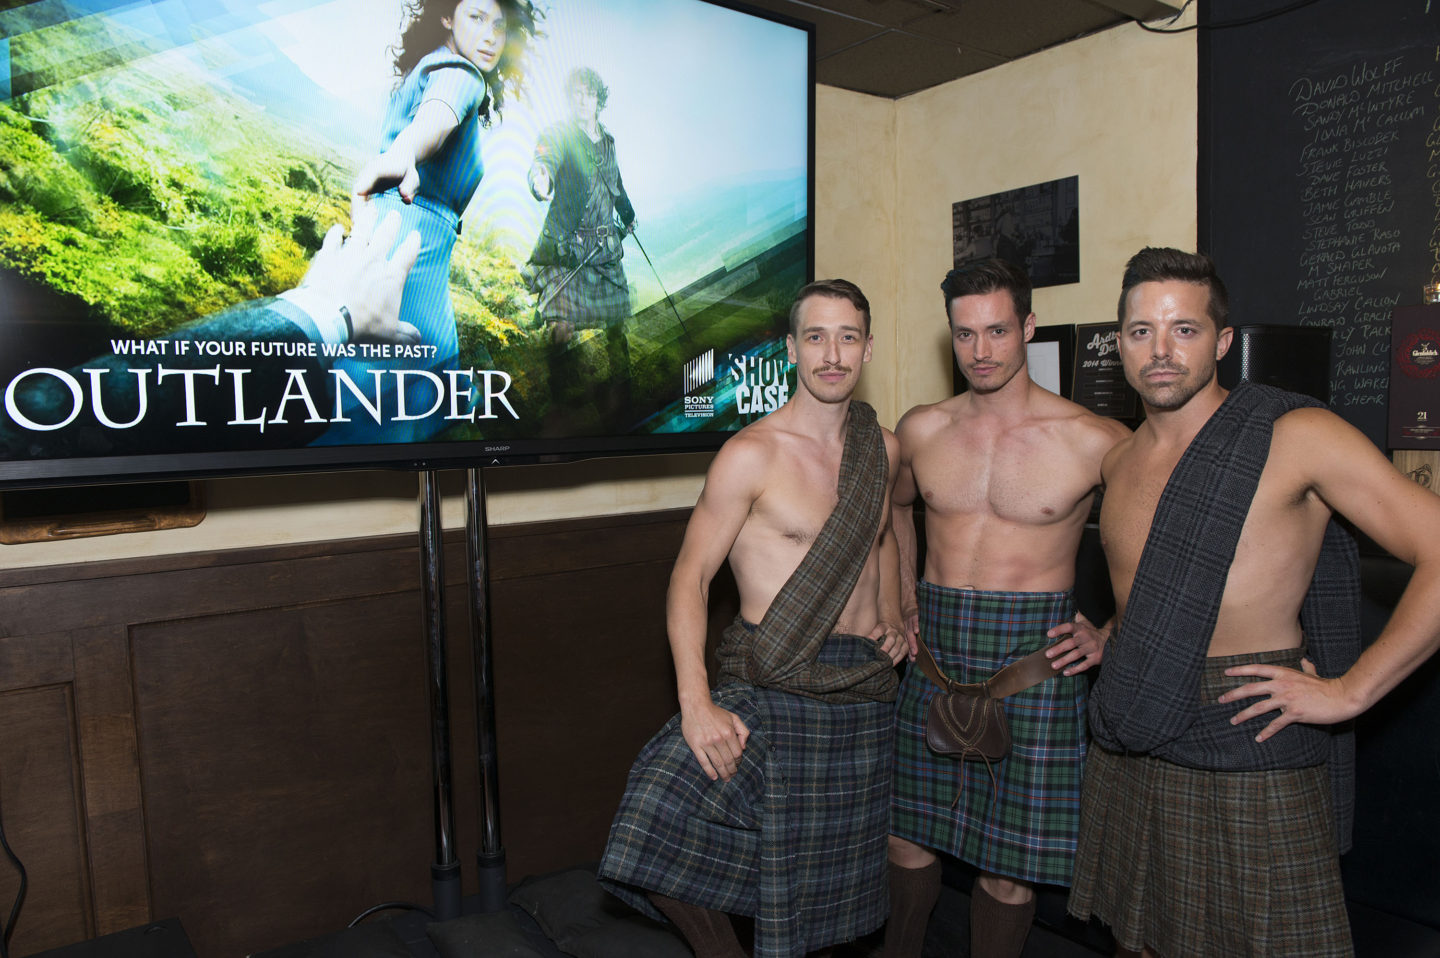 I Saw the Premiere of #Outlander and It's Steamy…